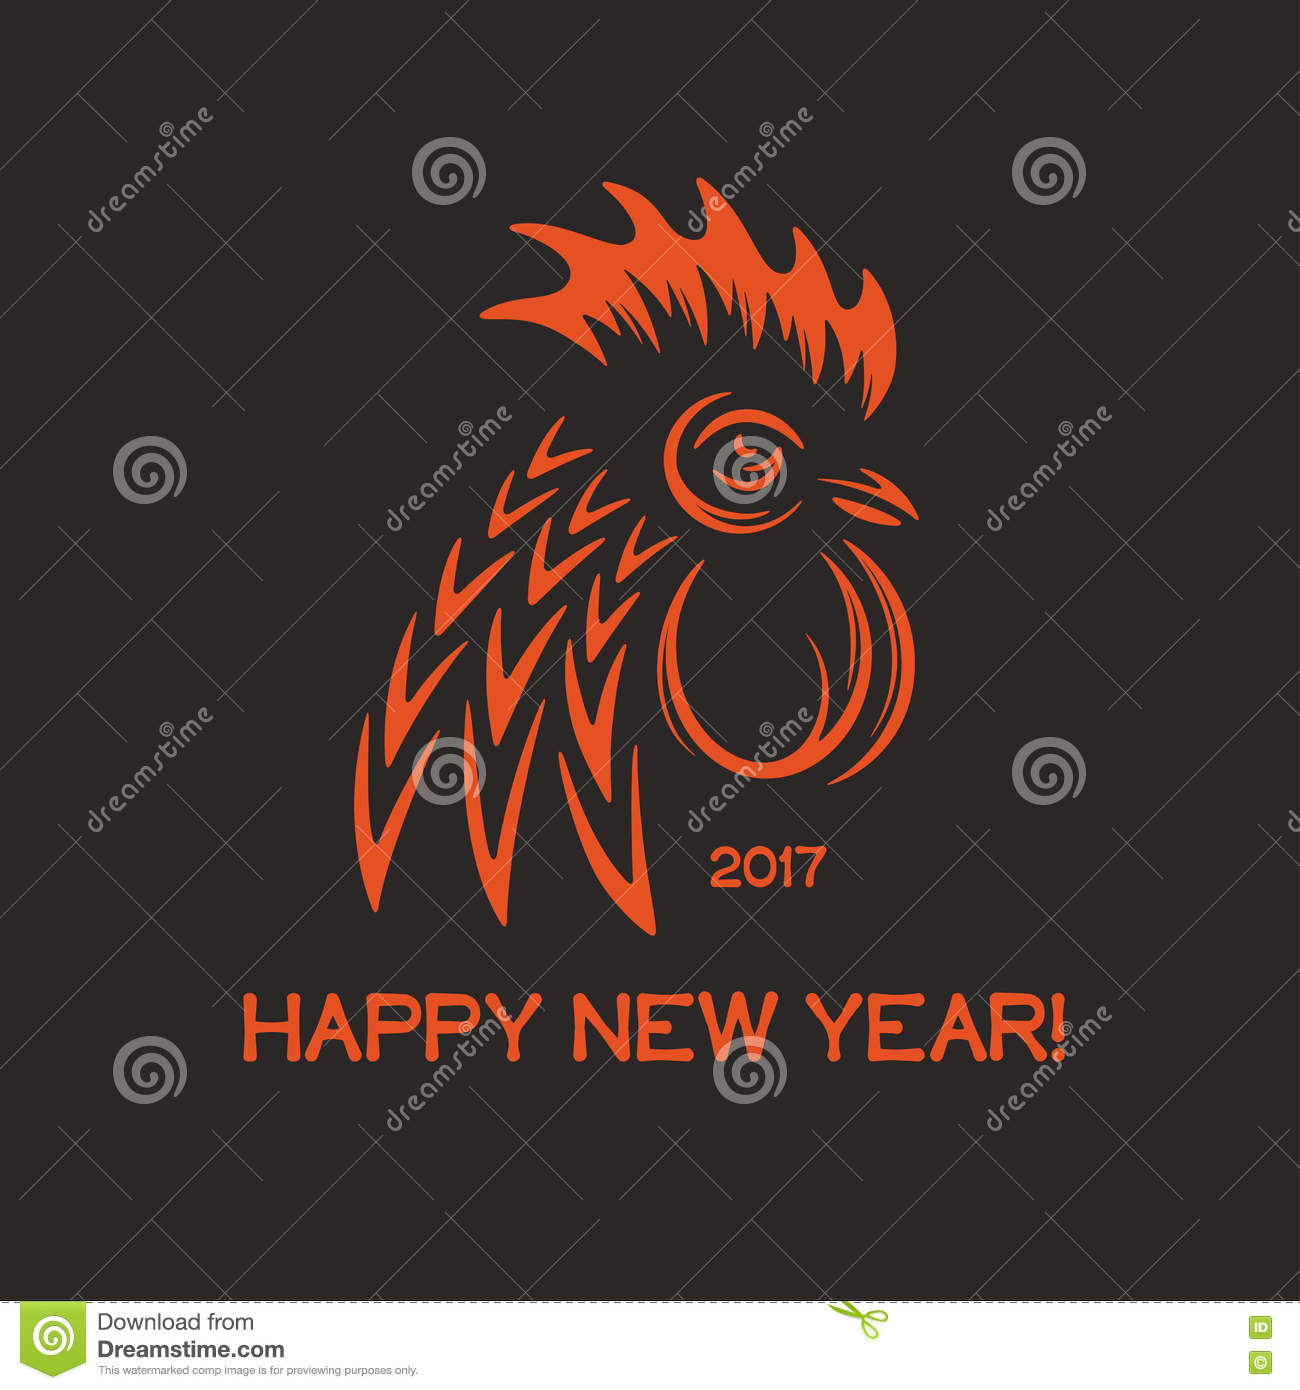 Happy New Year Greeting Card With Red Rooster Head And Text 2017